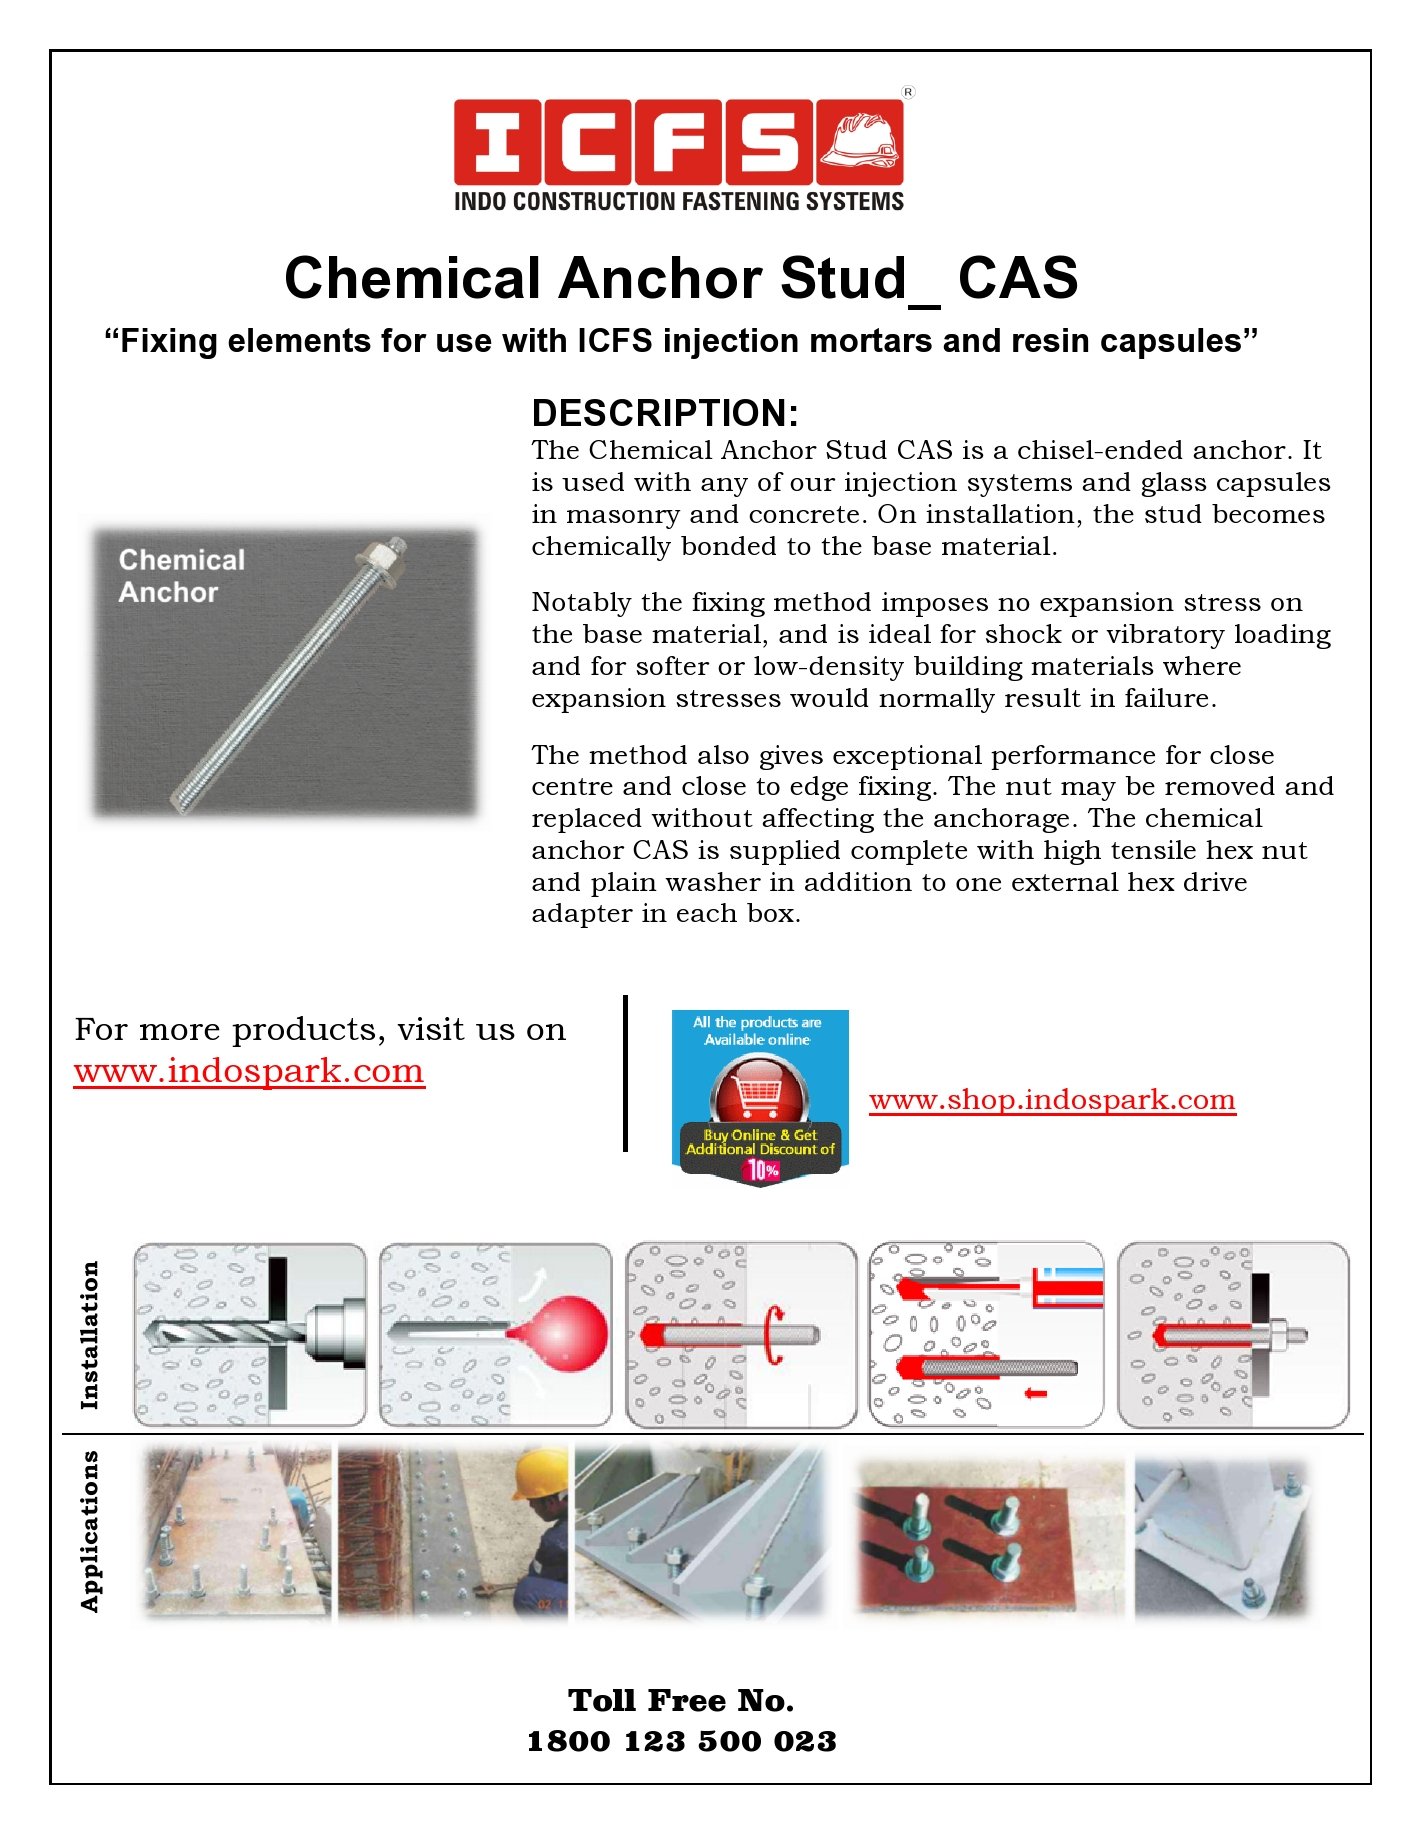 Chemical Anchor Stud_CAS